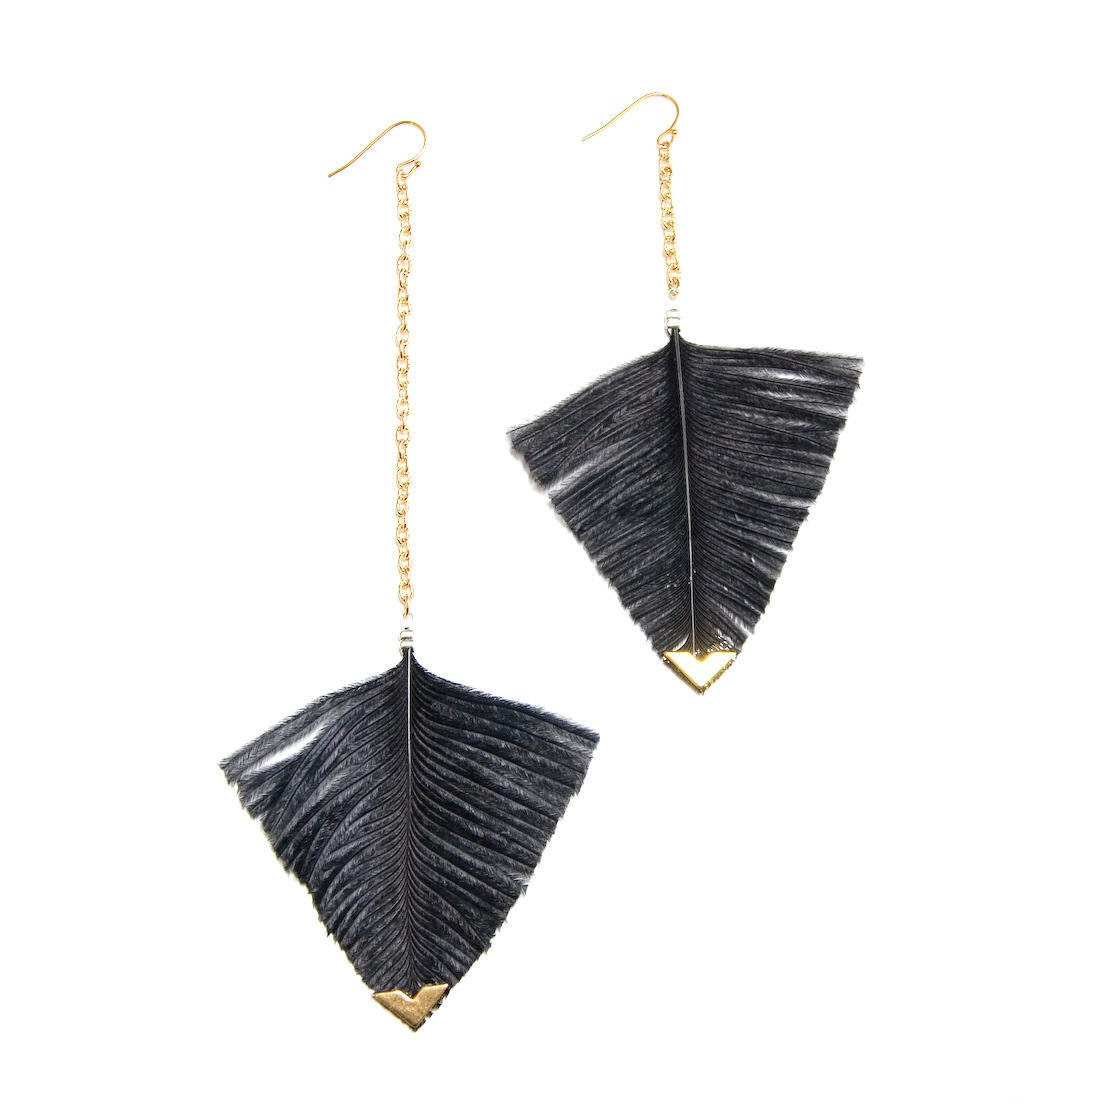 Statement Feather Earrings - Geometric Jewelry - Feather Earrings - Minimalist Earrings - Modern Cut - noemiah